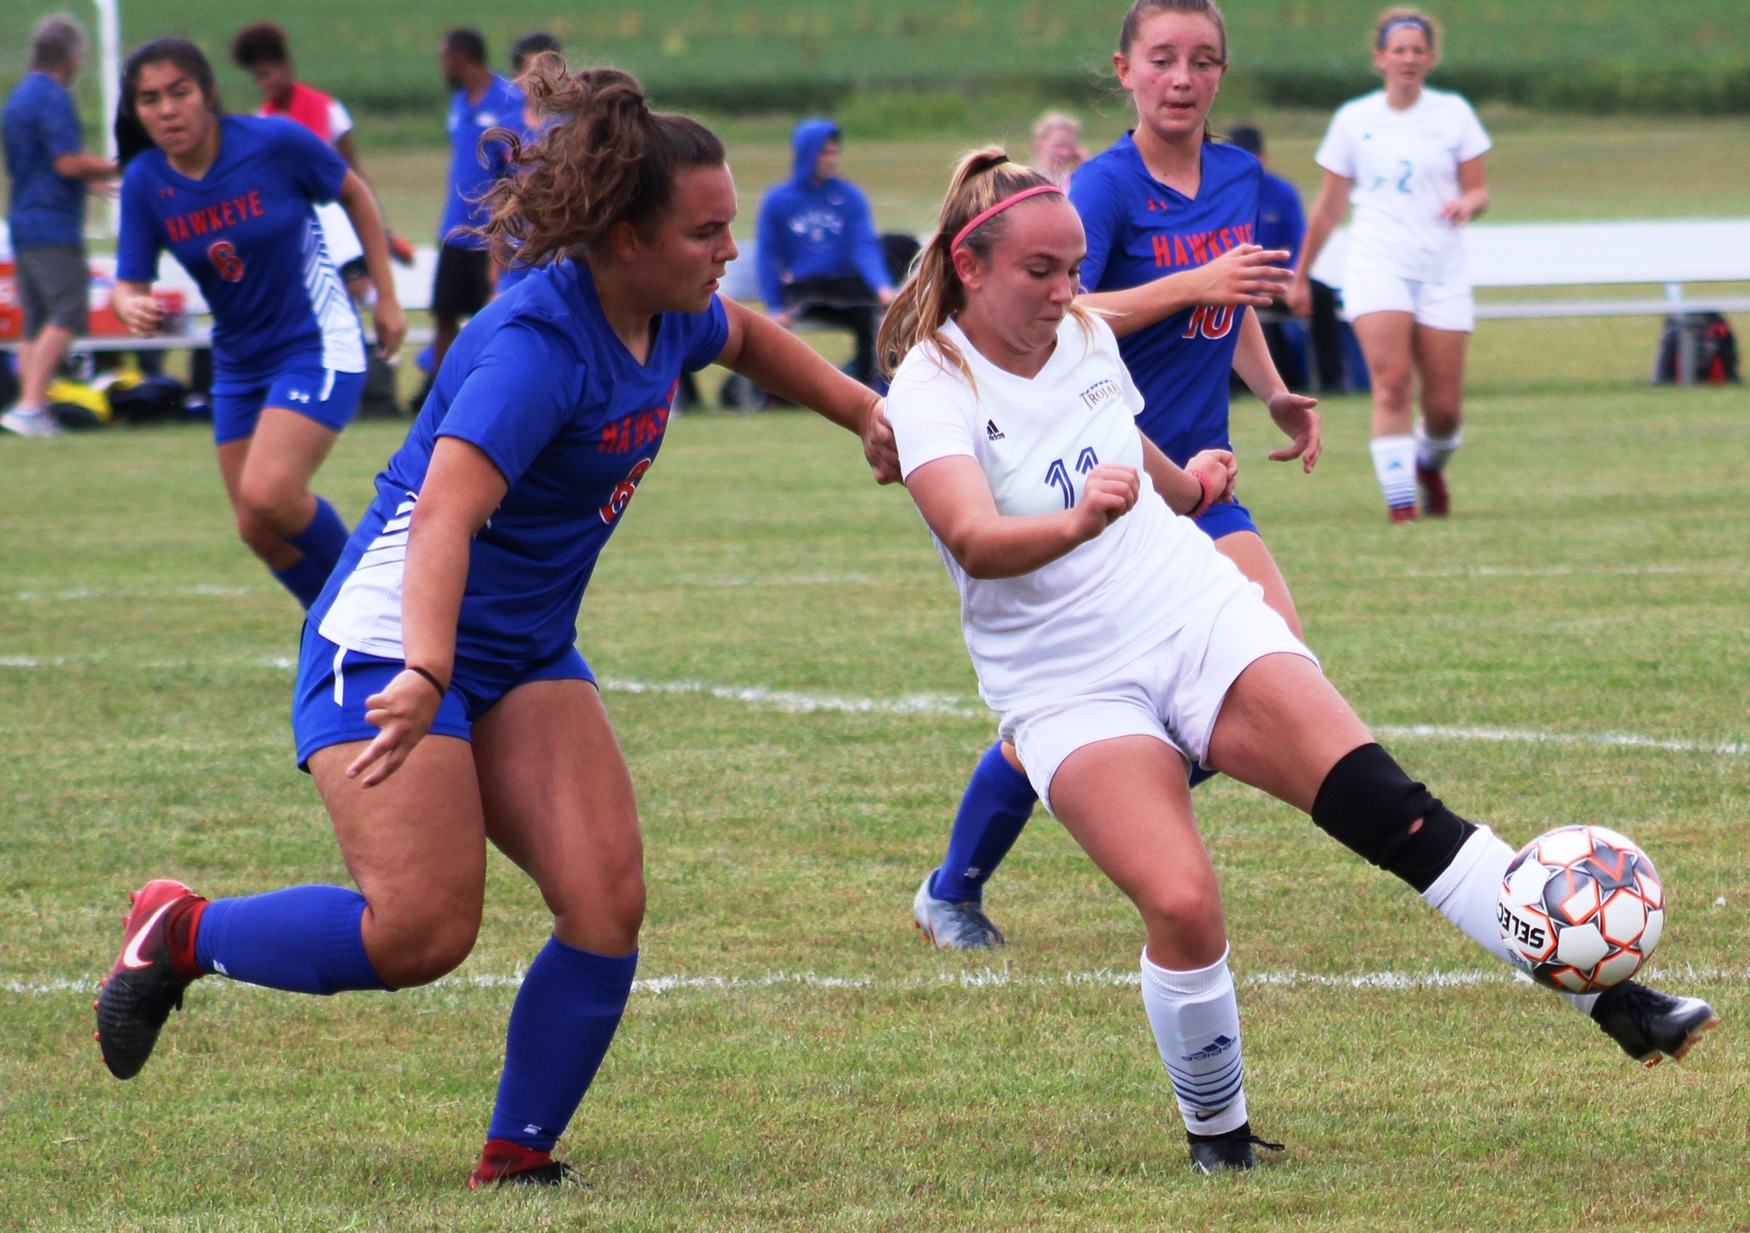 NIACC's Sophia Gebl kicks the ball in the first half of Saturday's contest against Hawkeye CC.